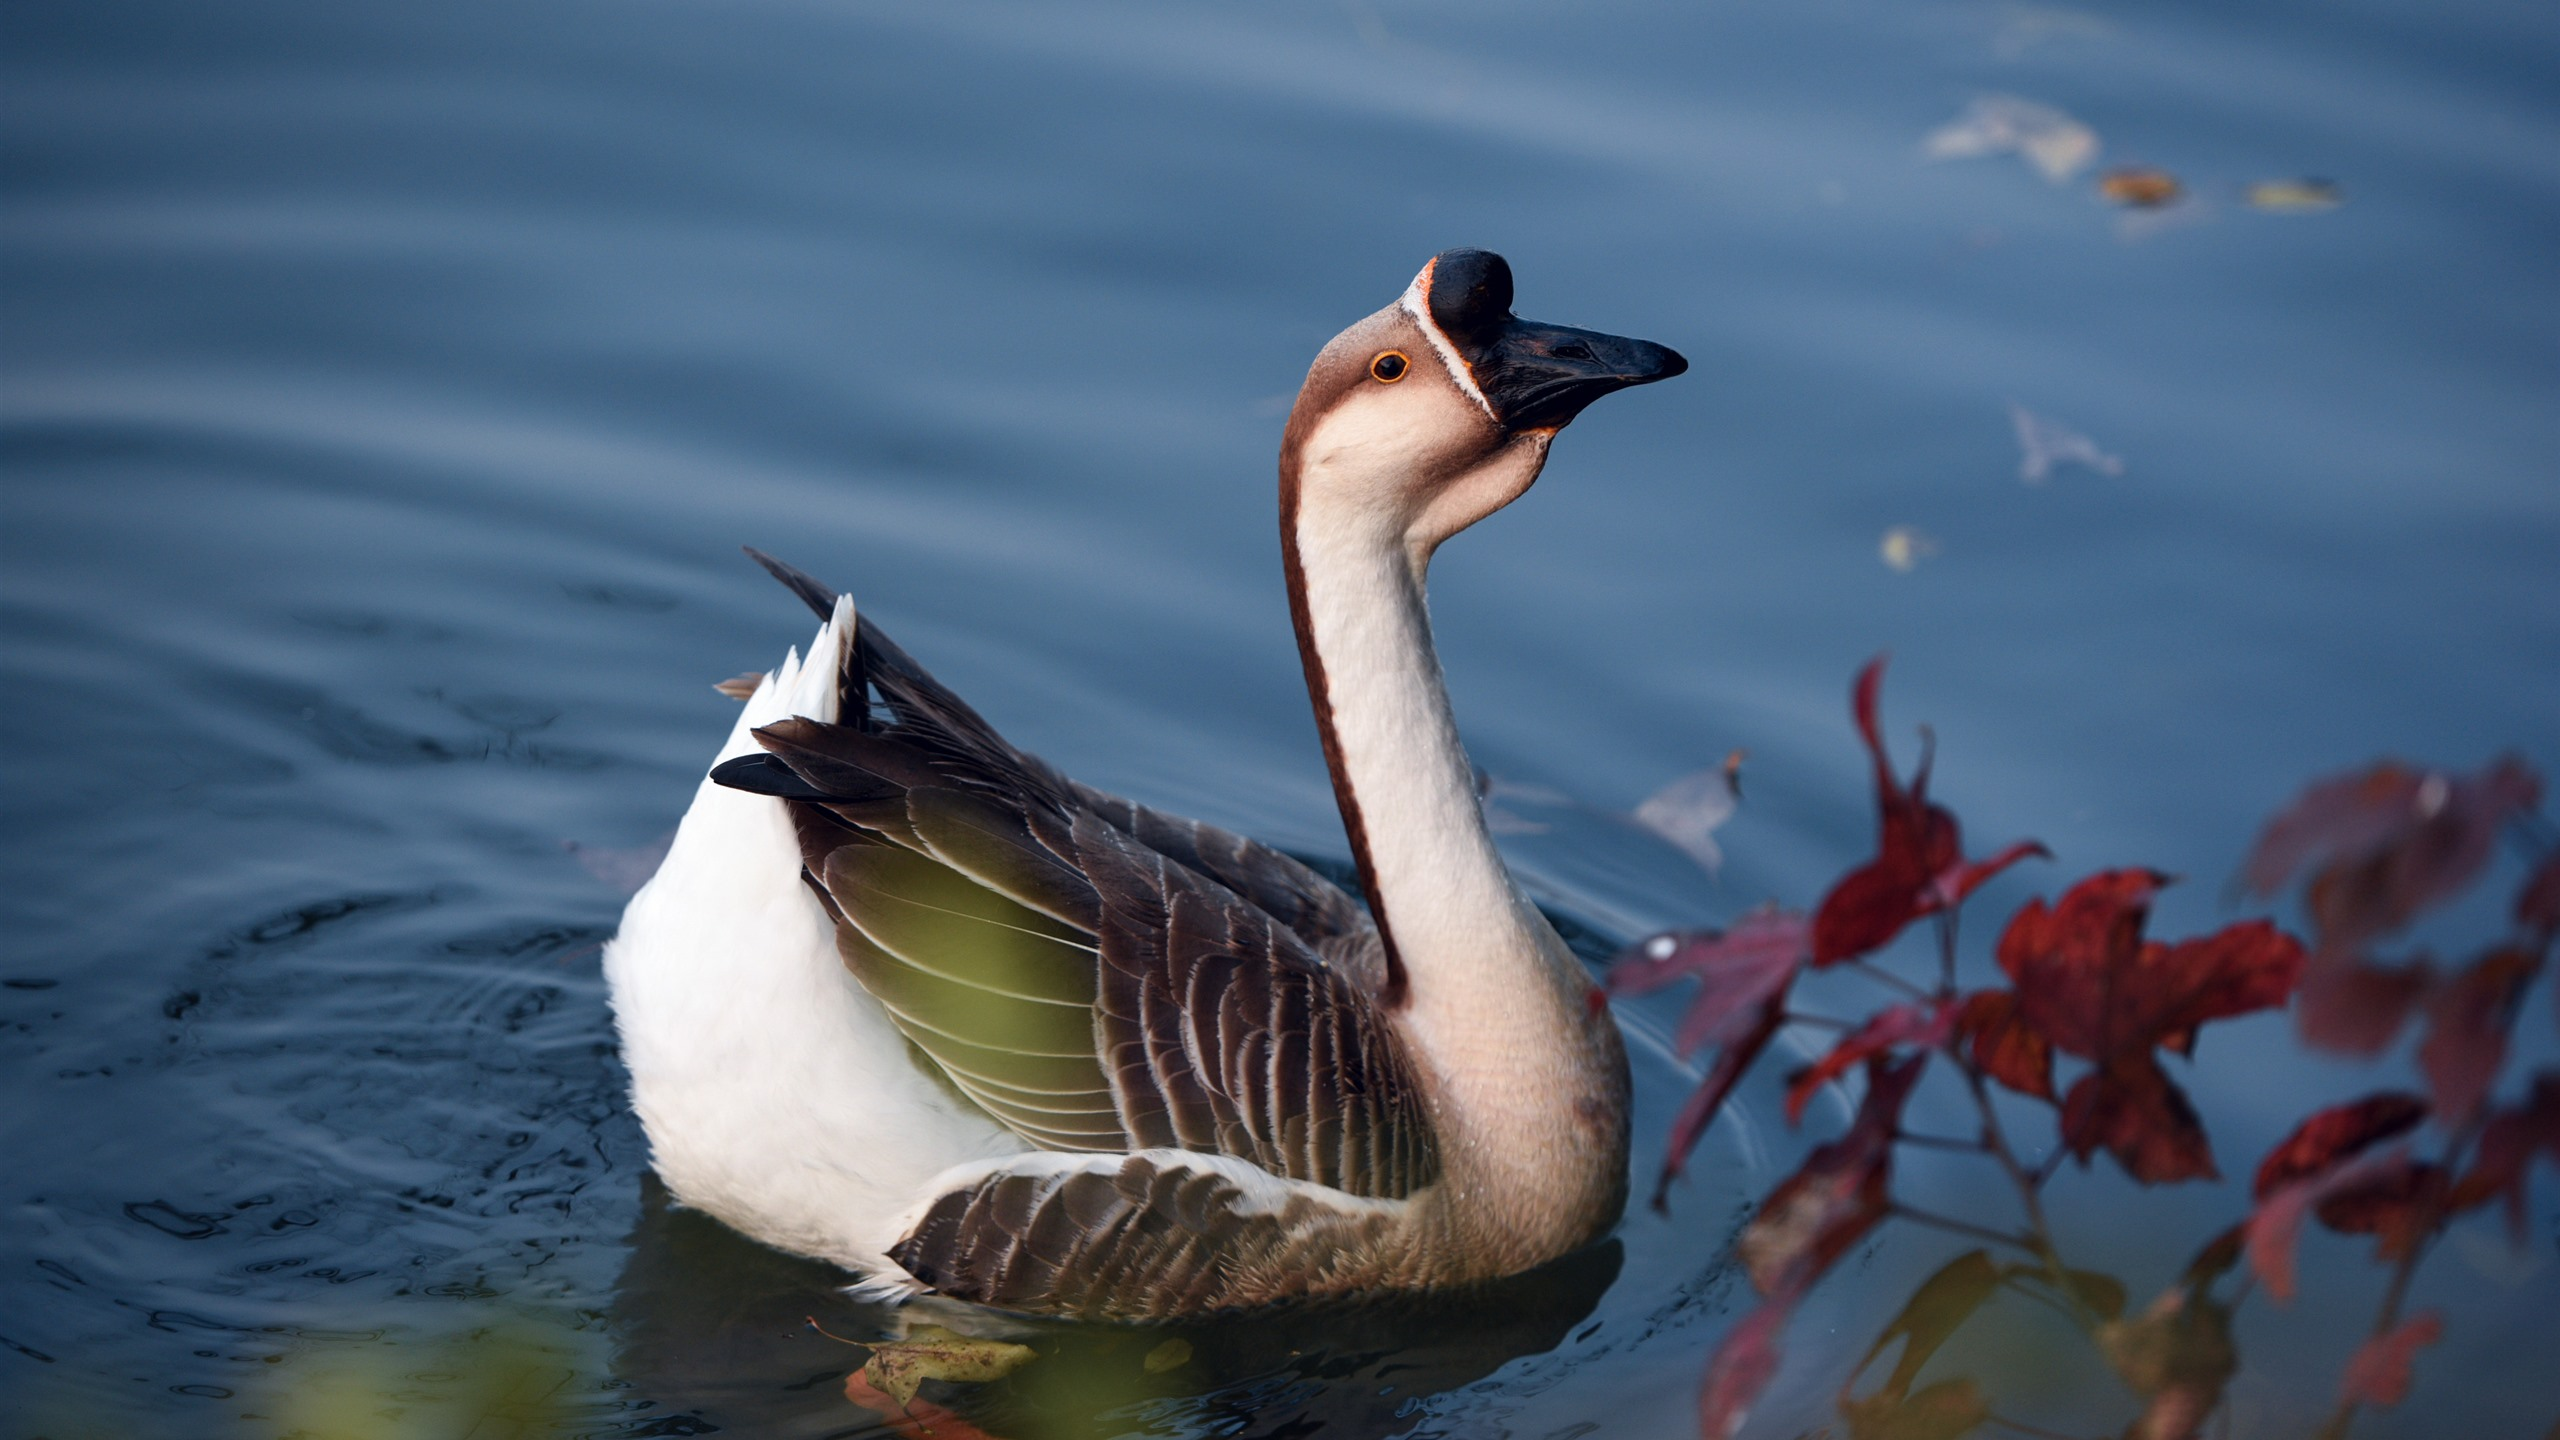 Wallpaper Wild Goose, Pond, Water 2880x1800 HD Picture, Image